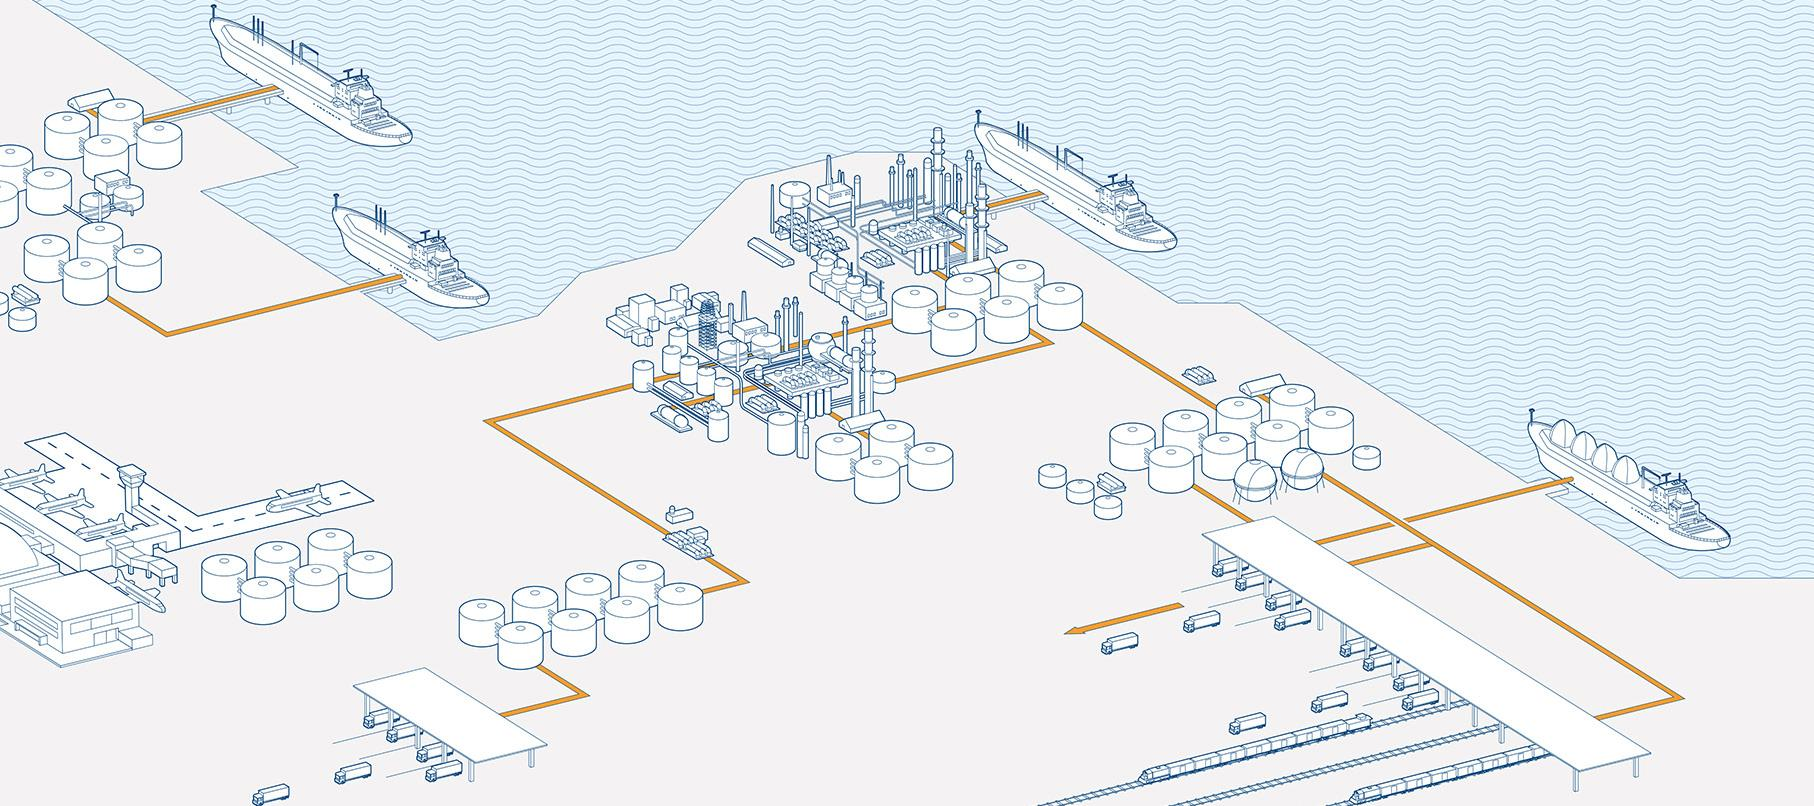 hight resolution of abb provides solutions for the whole hydrocarbon supply chain including production processing transportation storage and distribution